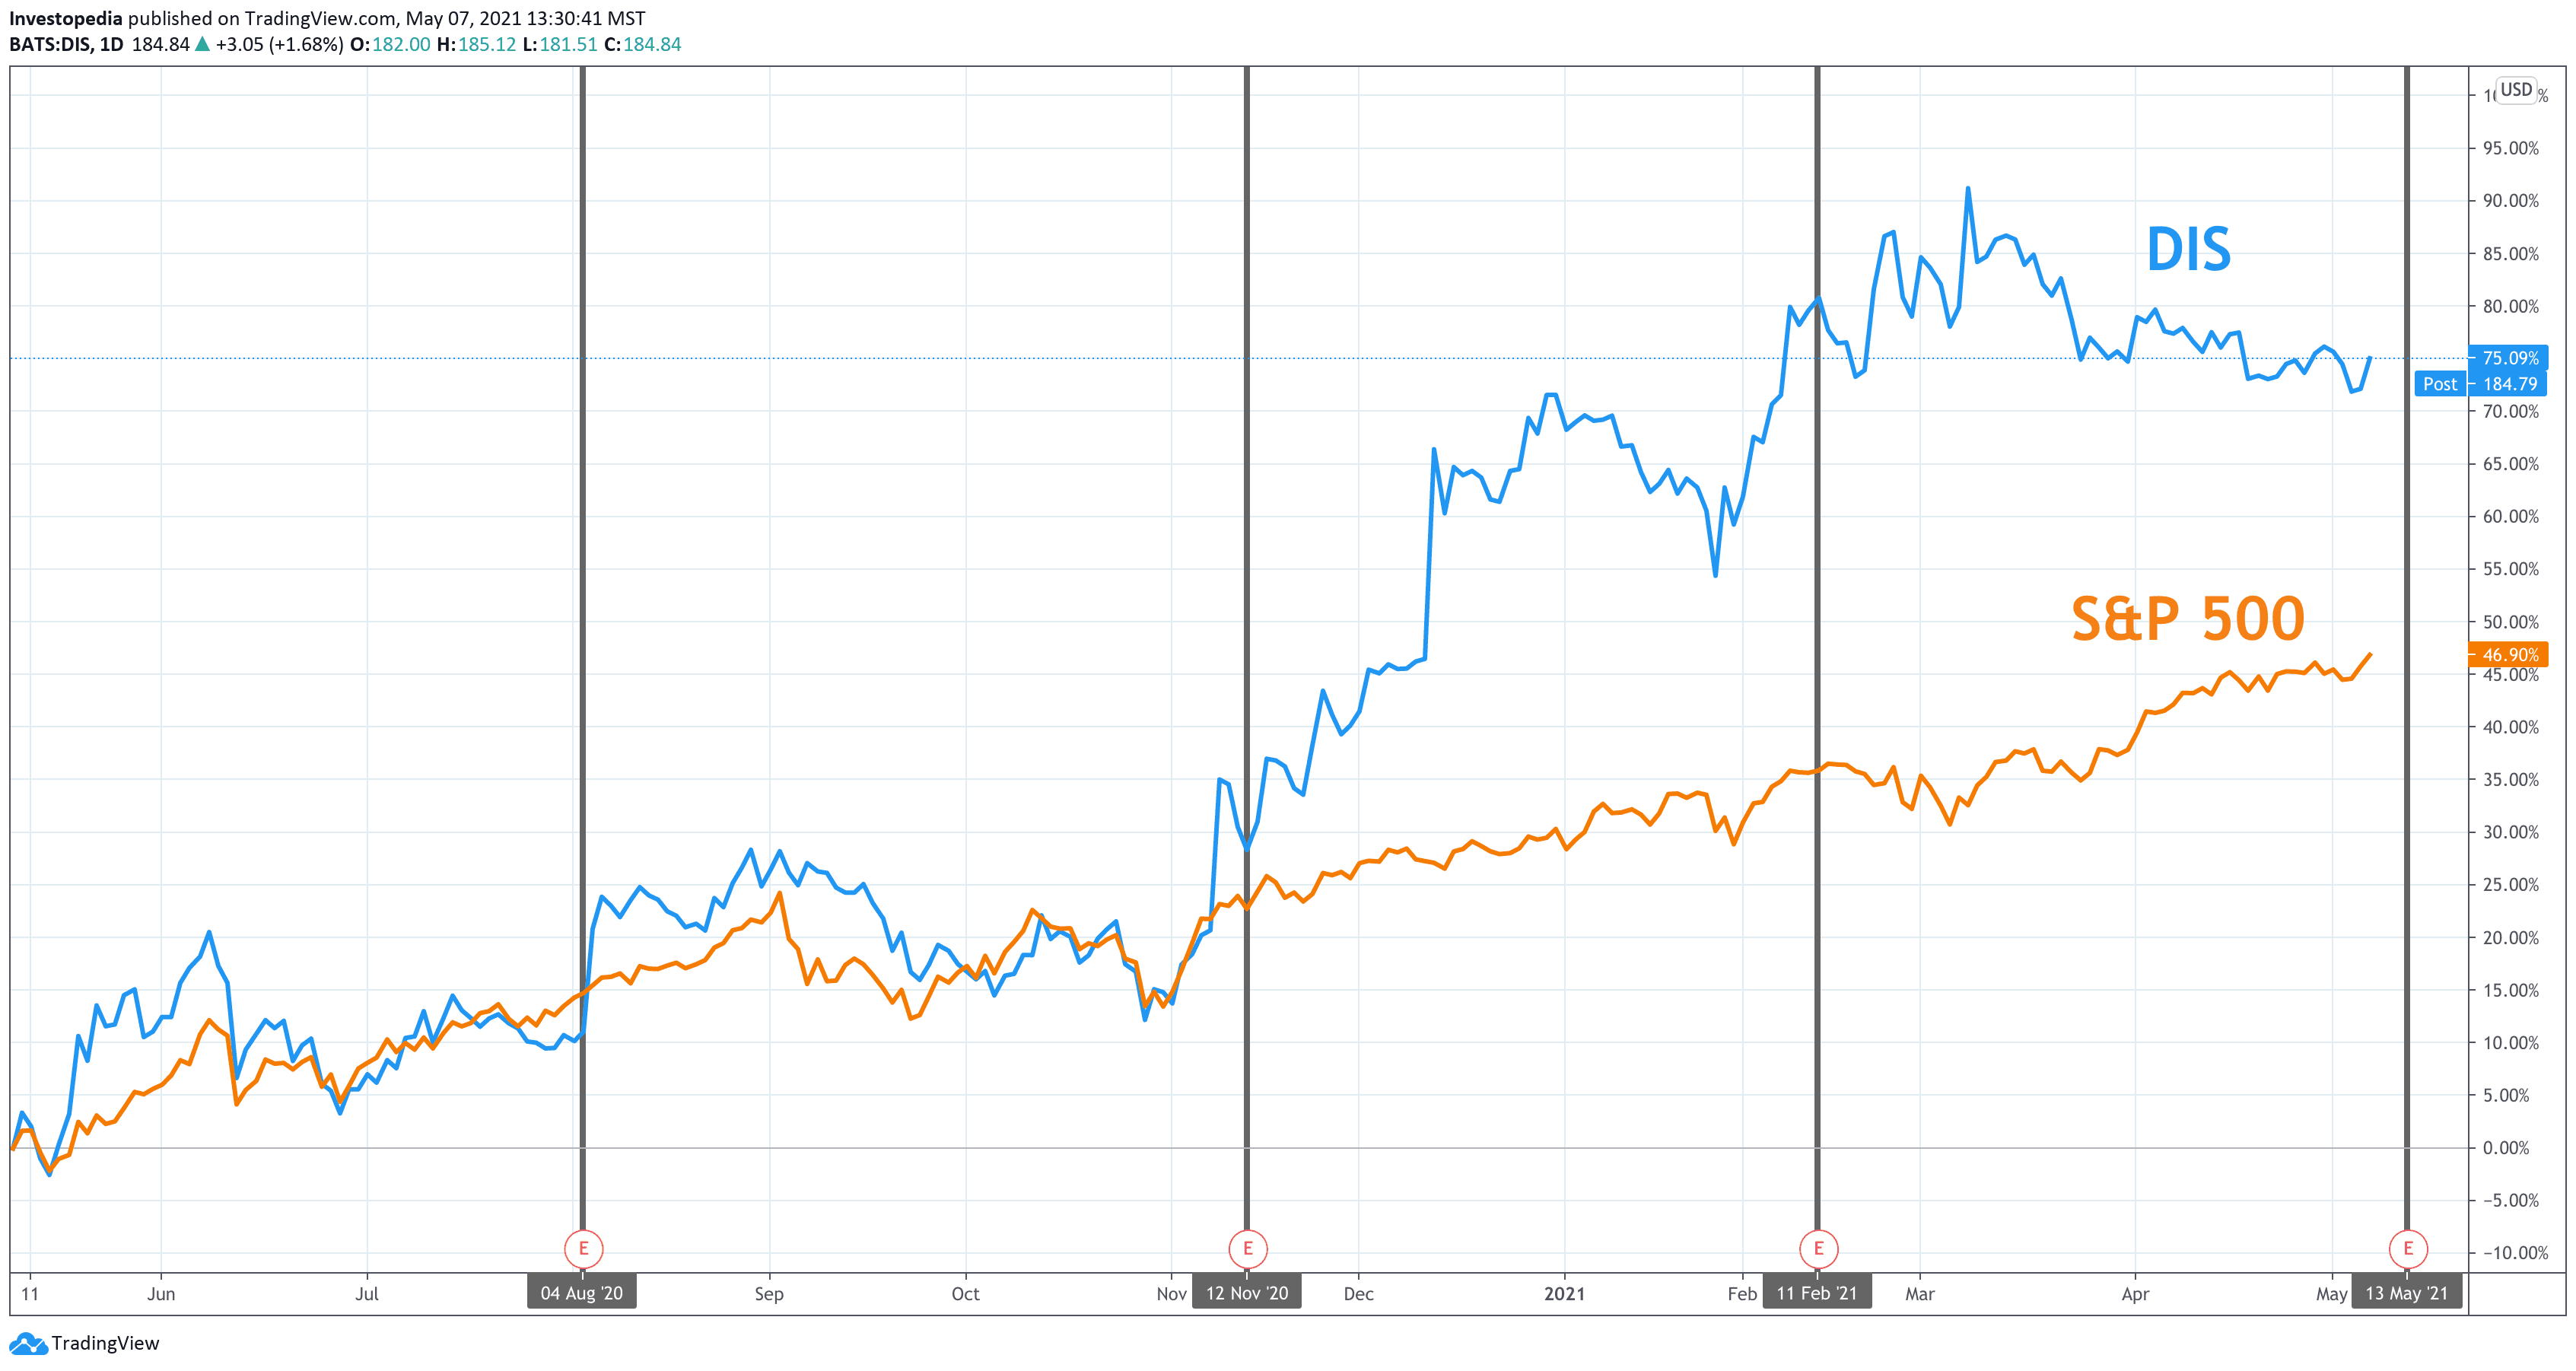 One Year Total Return for S&P 500 and Disney